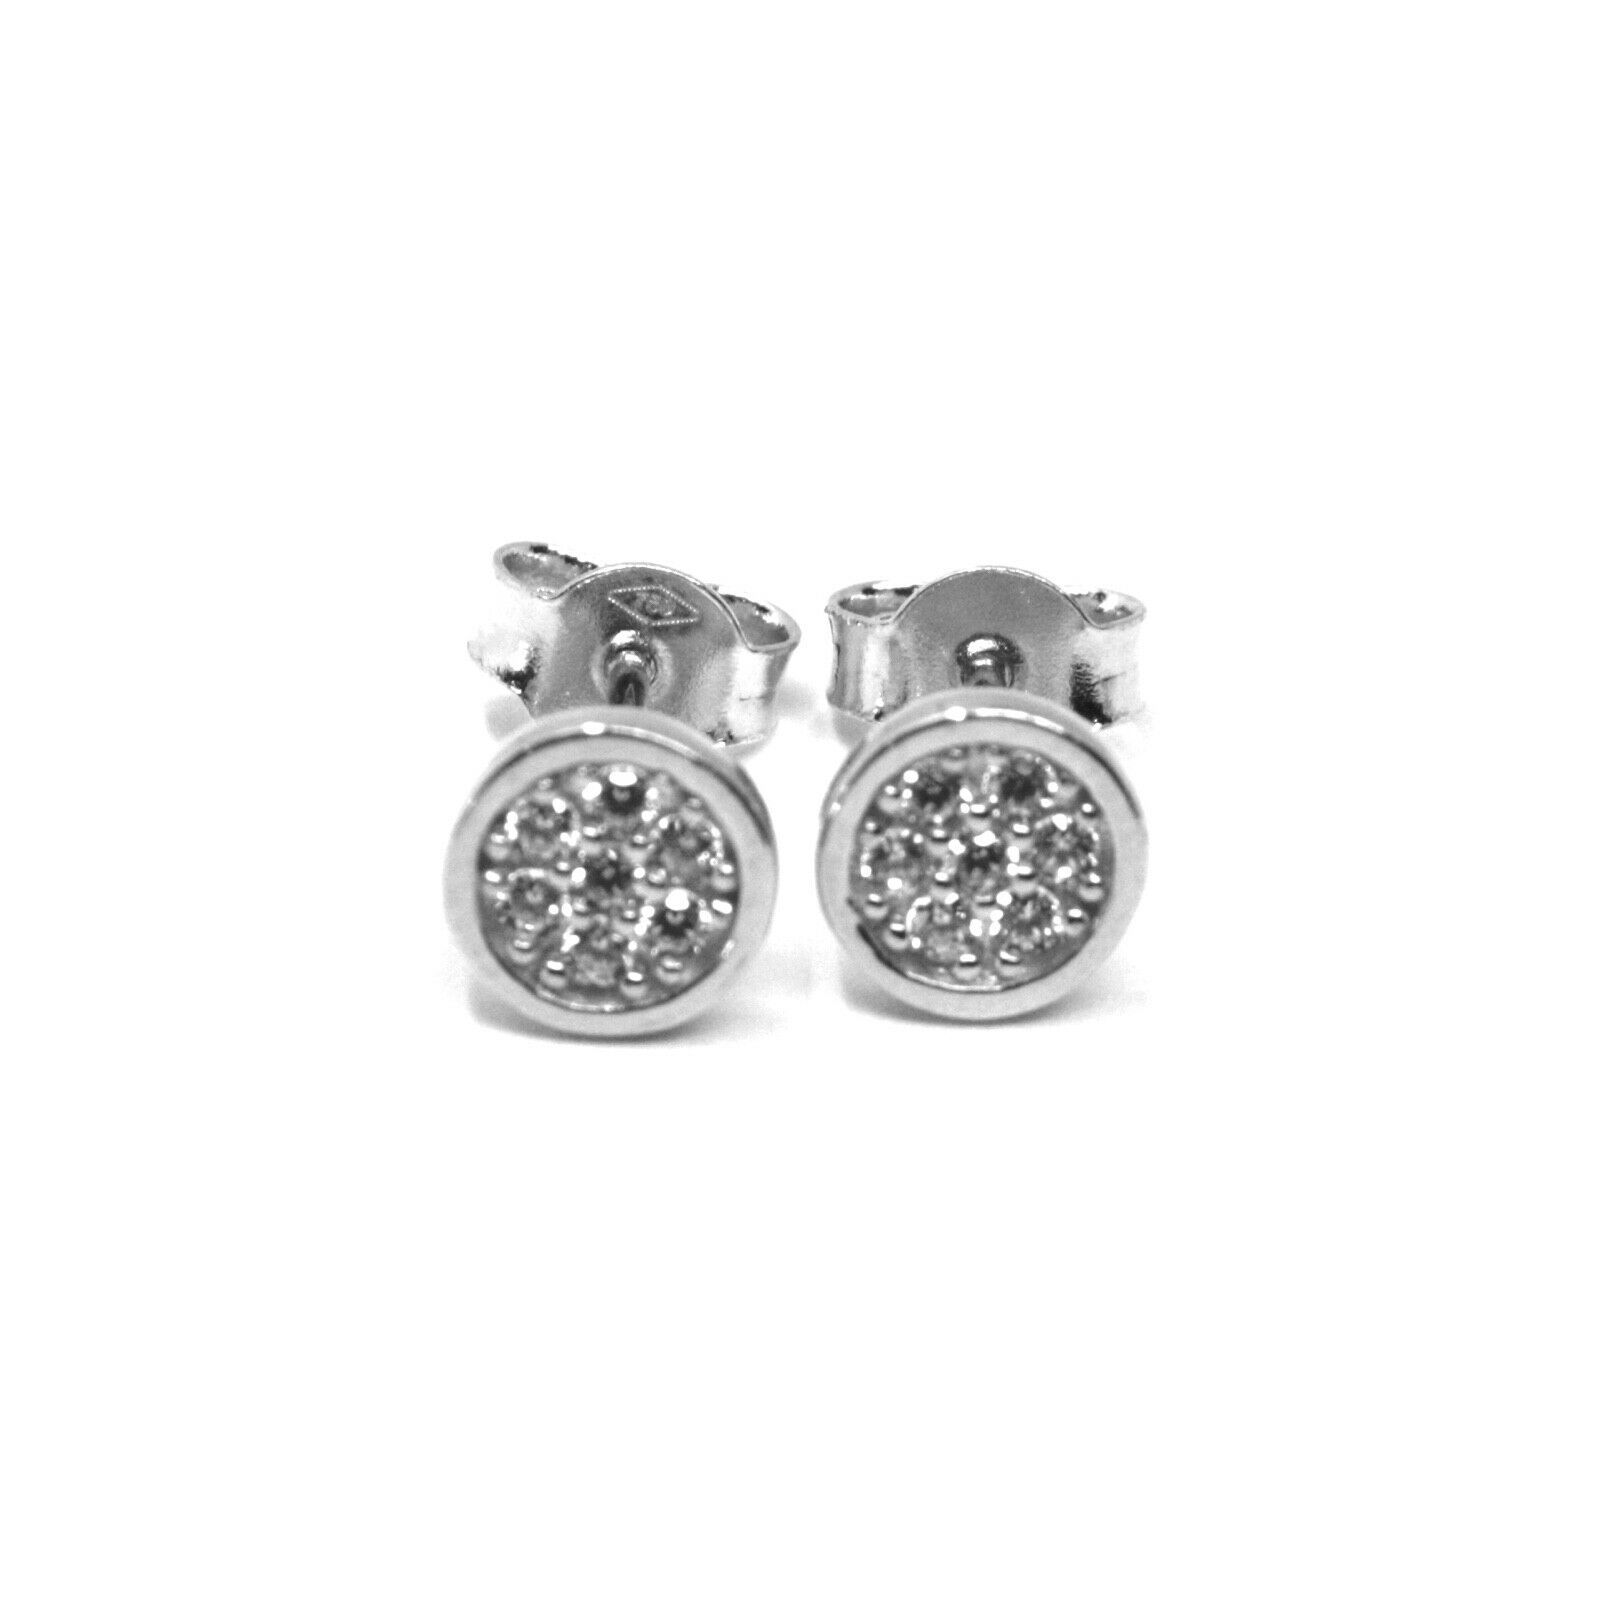 18K WHITE GOLD MINI BUTTON EARRINGS WITH CUBIC ZIRCONIA, DISC FLOWER, 6 MM